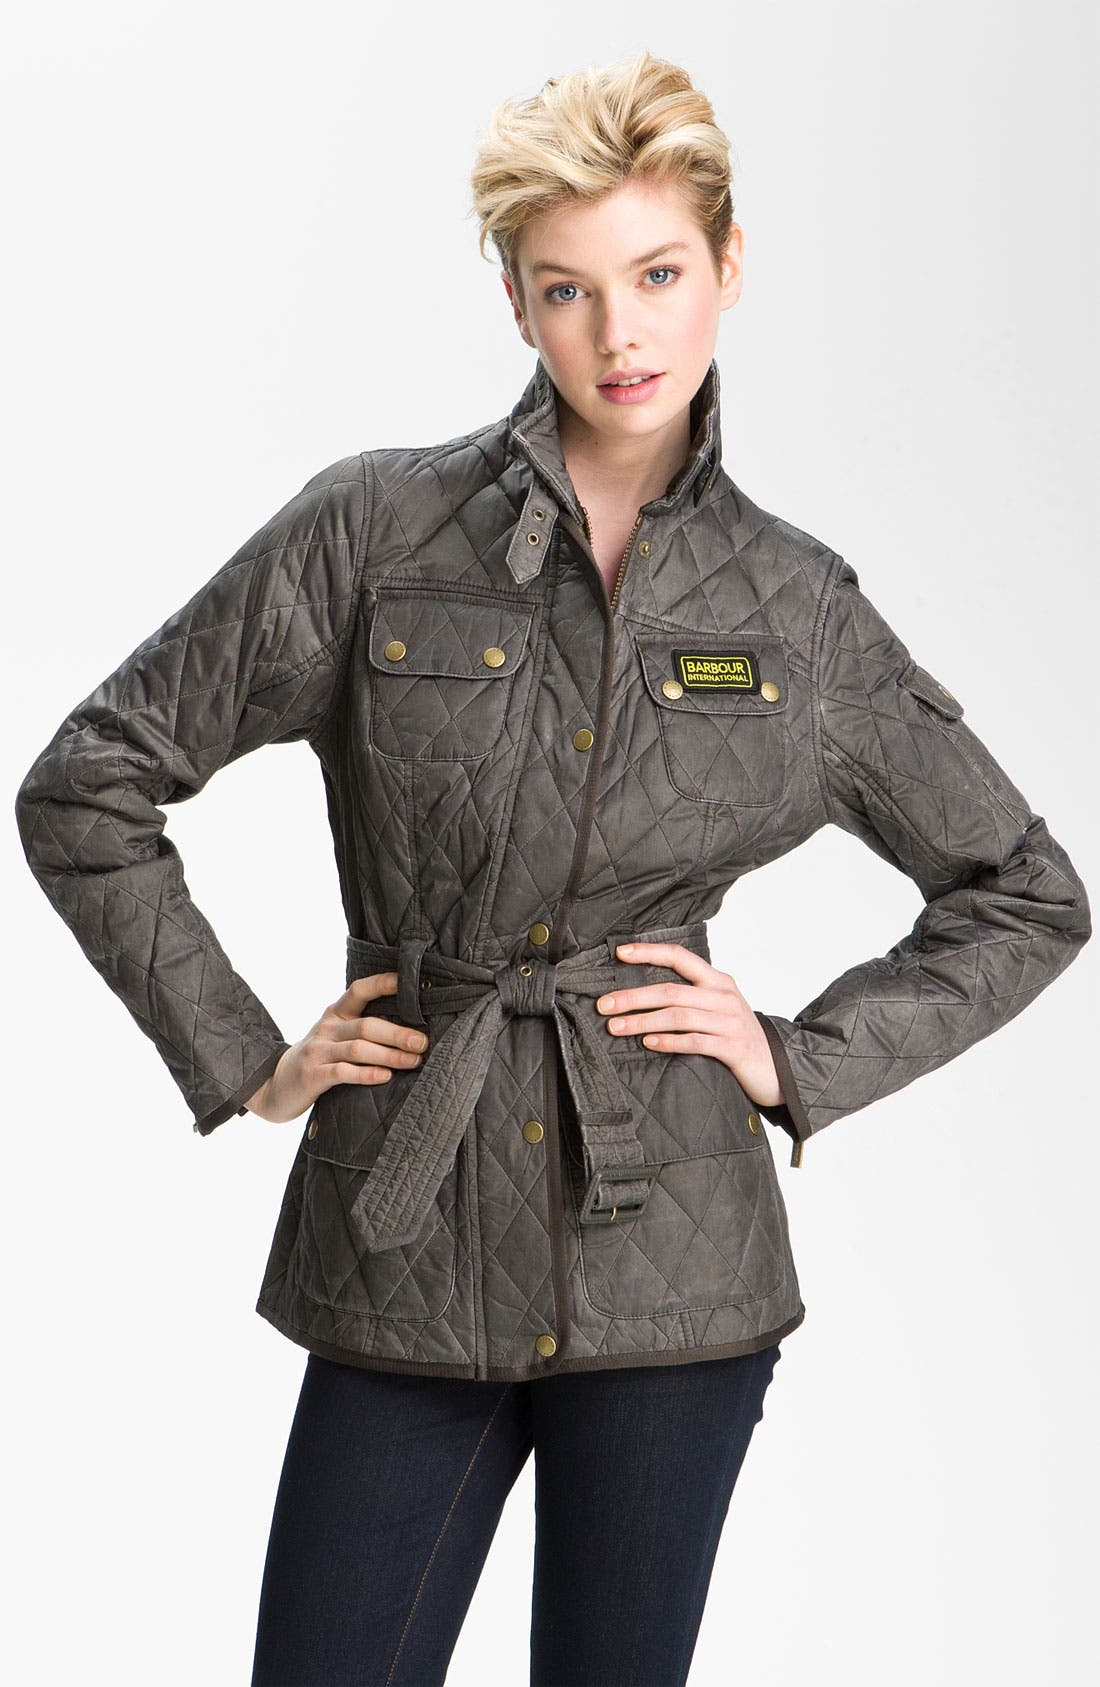 Alternate Image 1 Selected - Barbour 'Heritage International' Quilted Jacket (Online Exclusive)